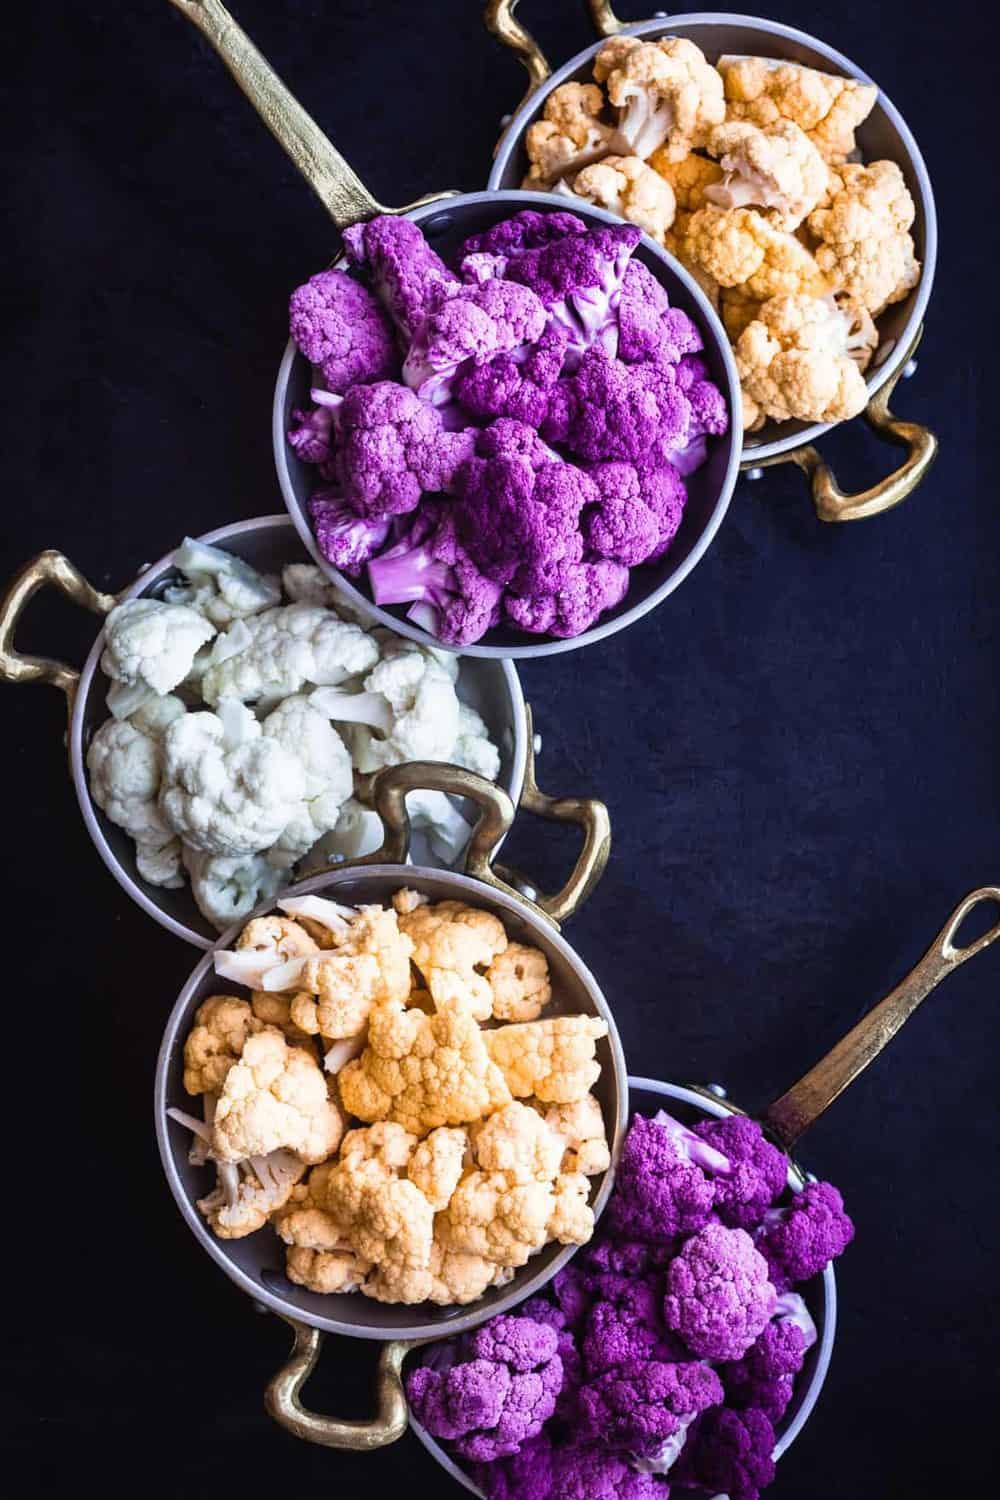 Purple, Yellow/Orange and White Cauliflower cut into florets and separated by color, into 5 little pans (2 of purple, 2 of yellow/orange and 1 white) on a black background.